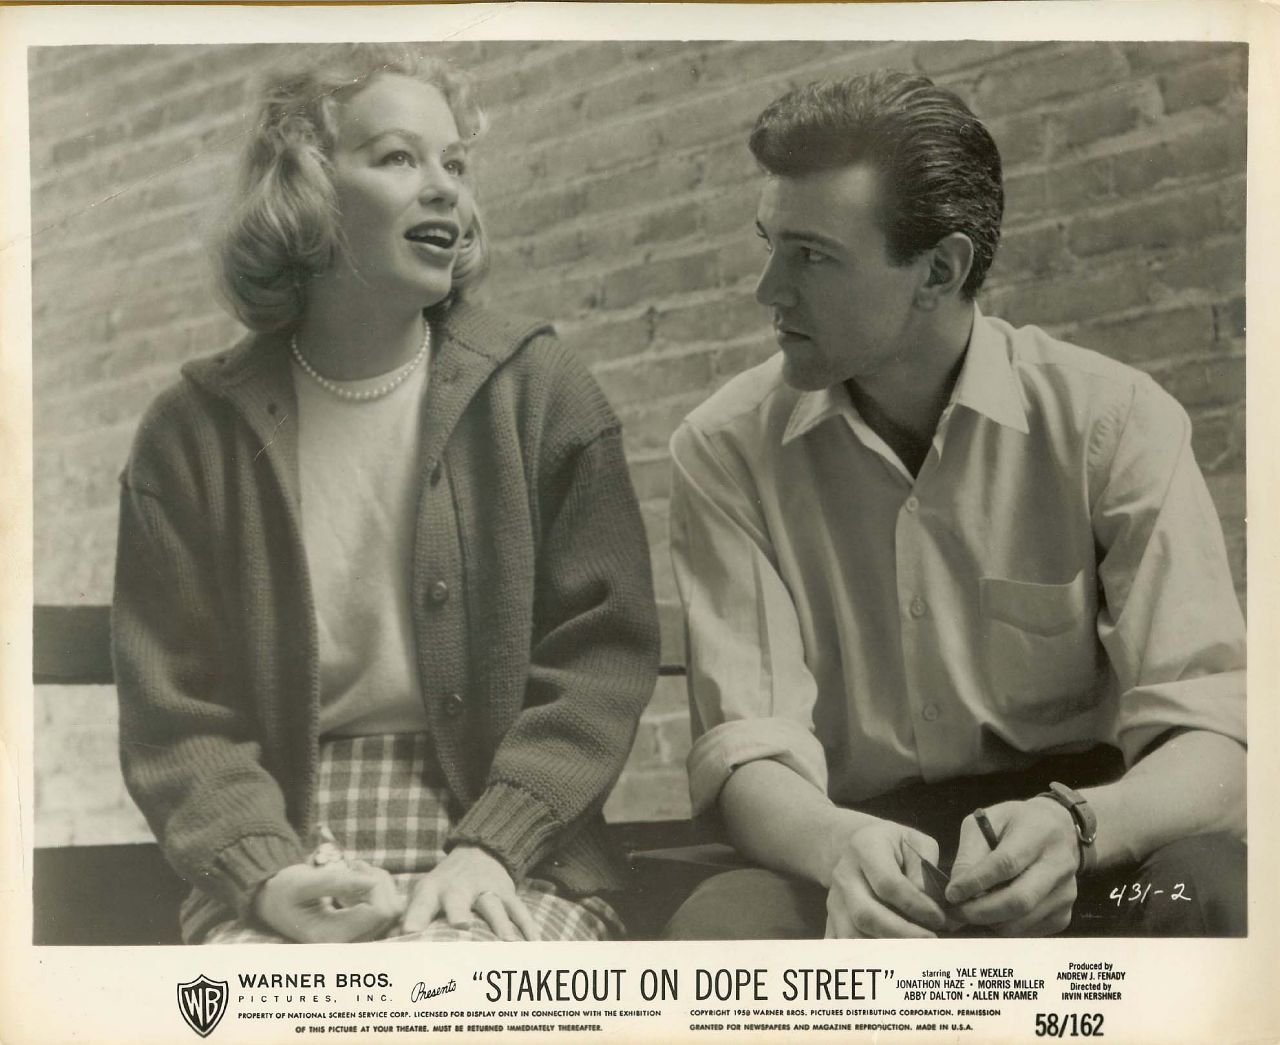 Communication on this topic: Daphne Slater, anthony-quayle-1913-989/